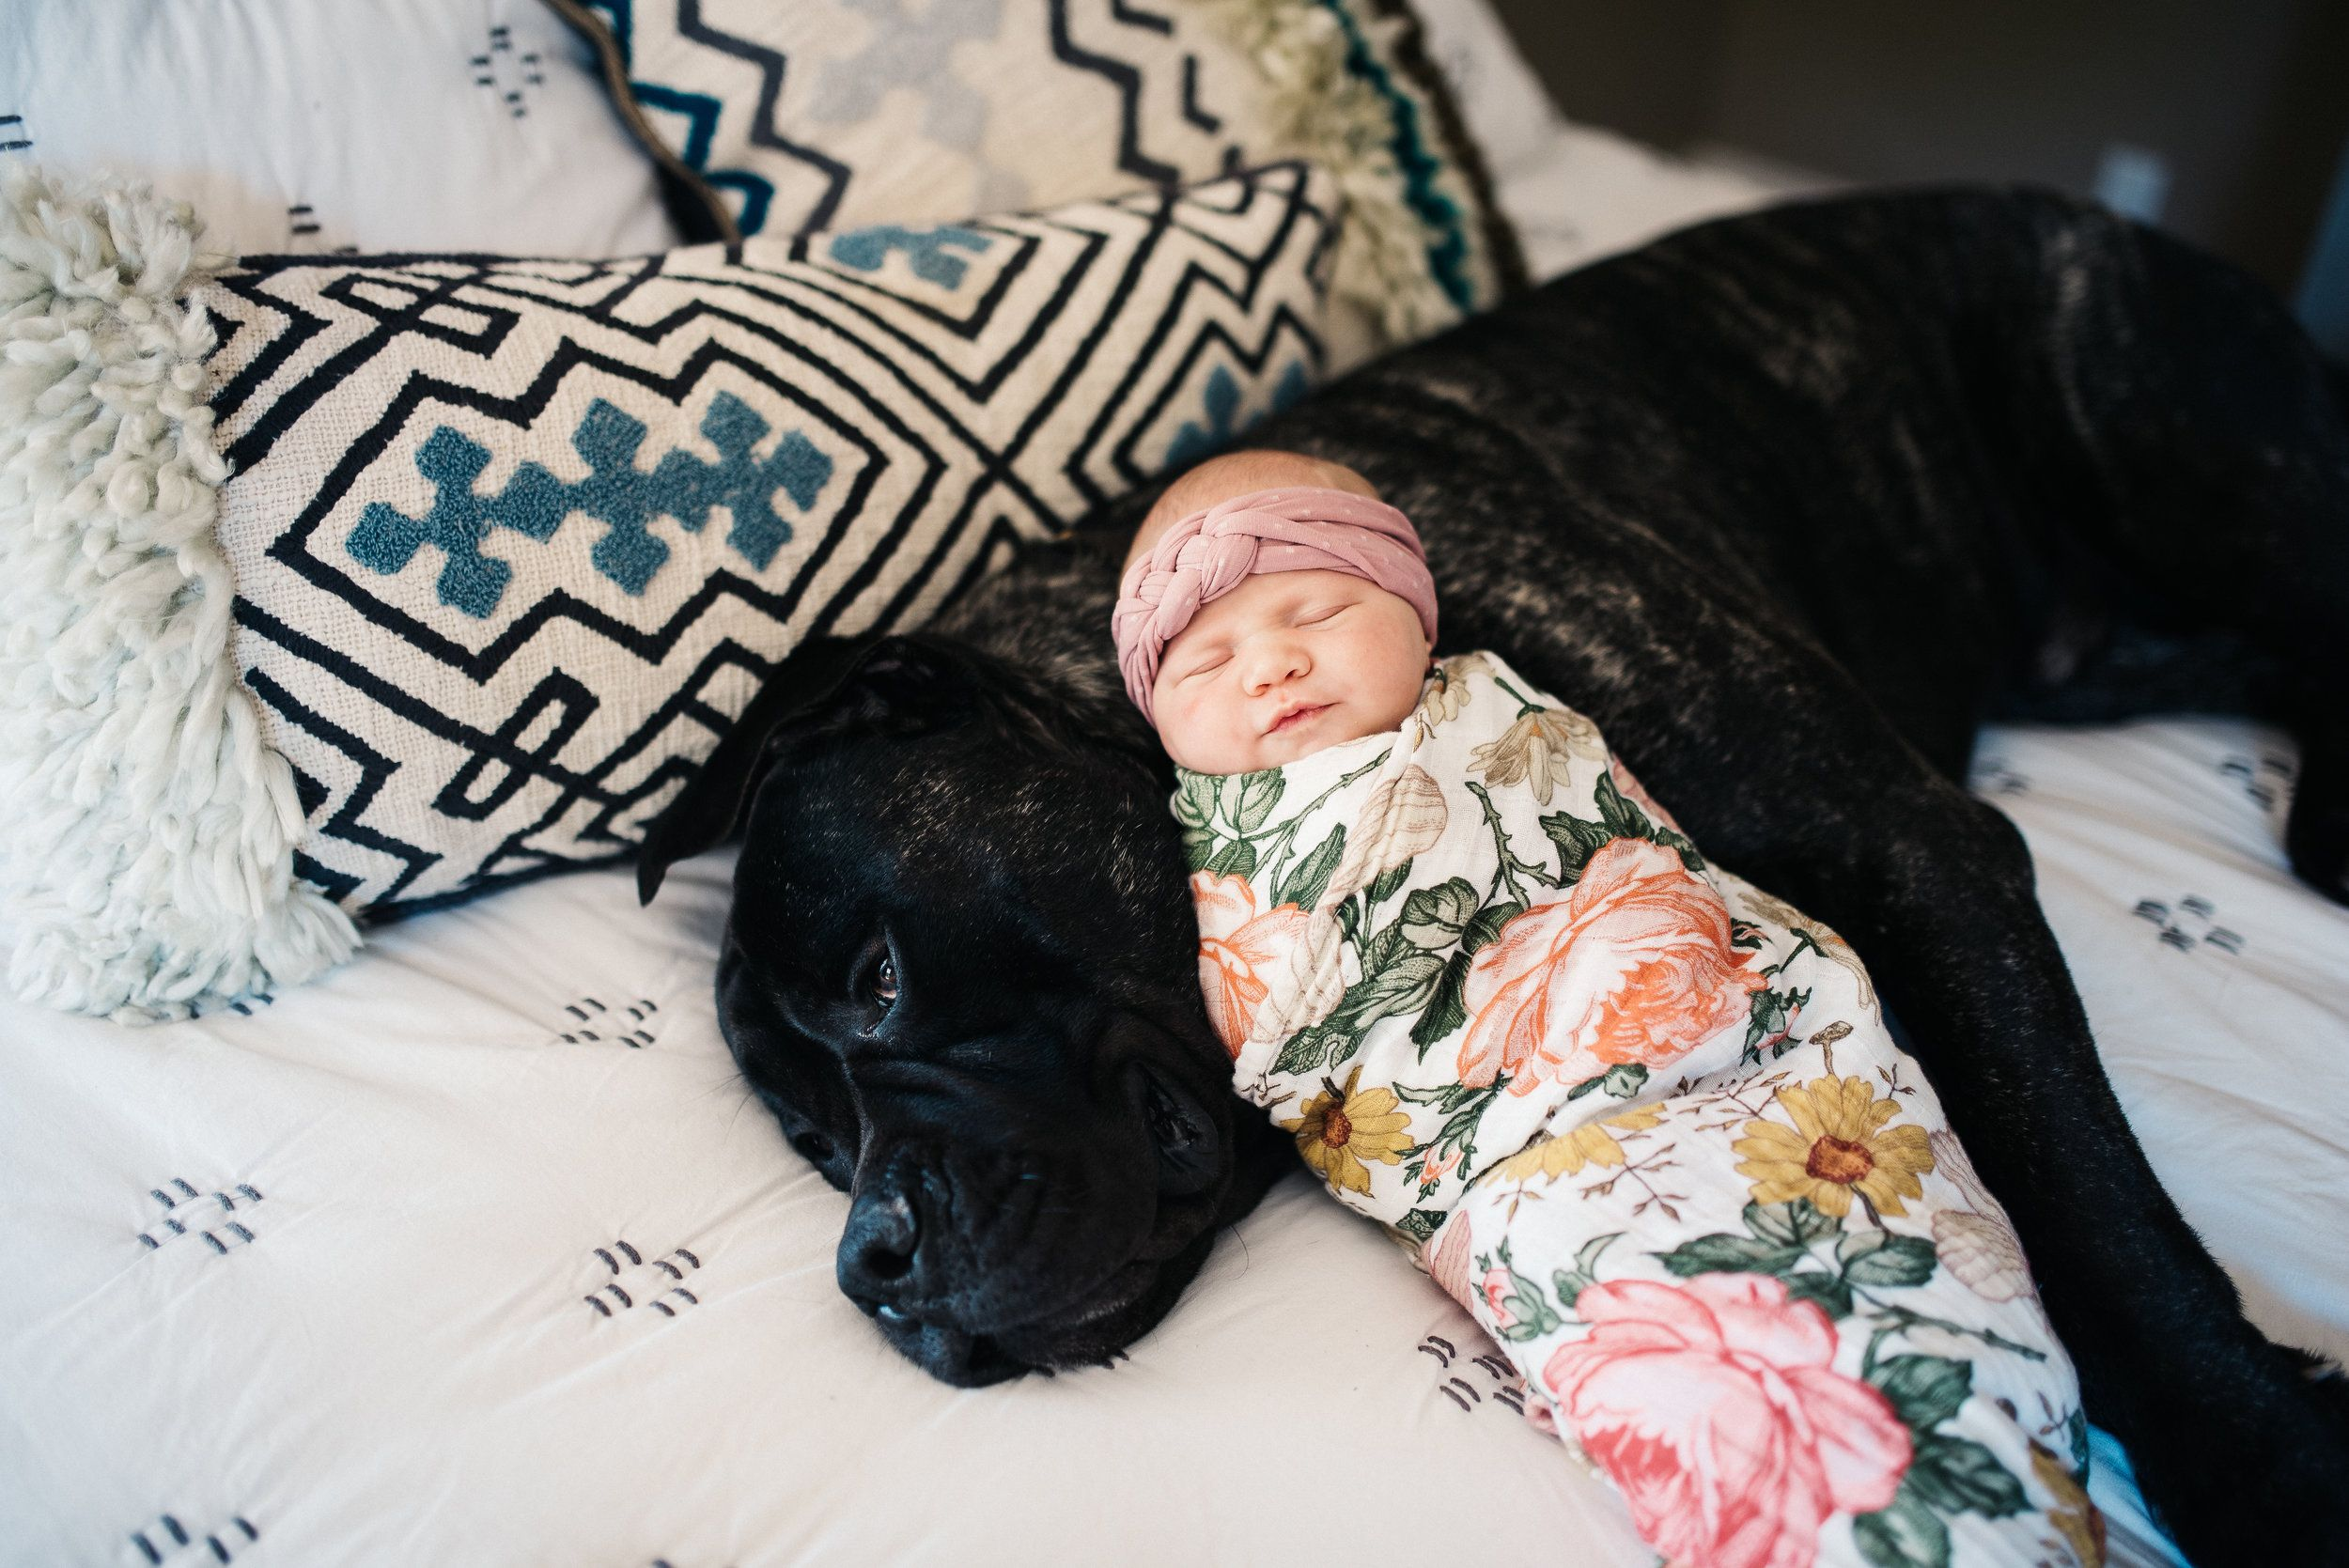 Newborn baby sleeping on top of the family dog on the bed during an in-home newborn photo session in Reedley, California